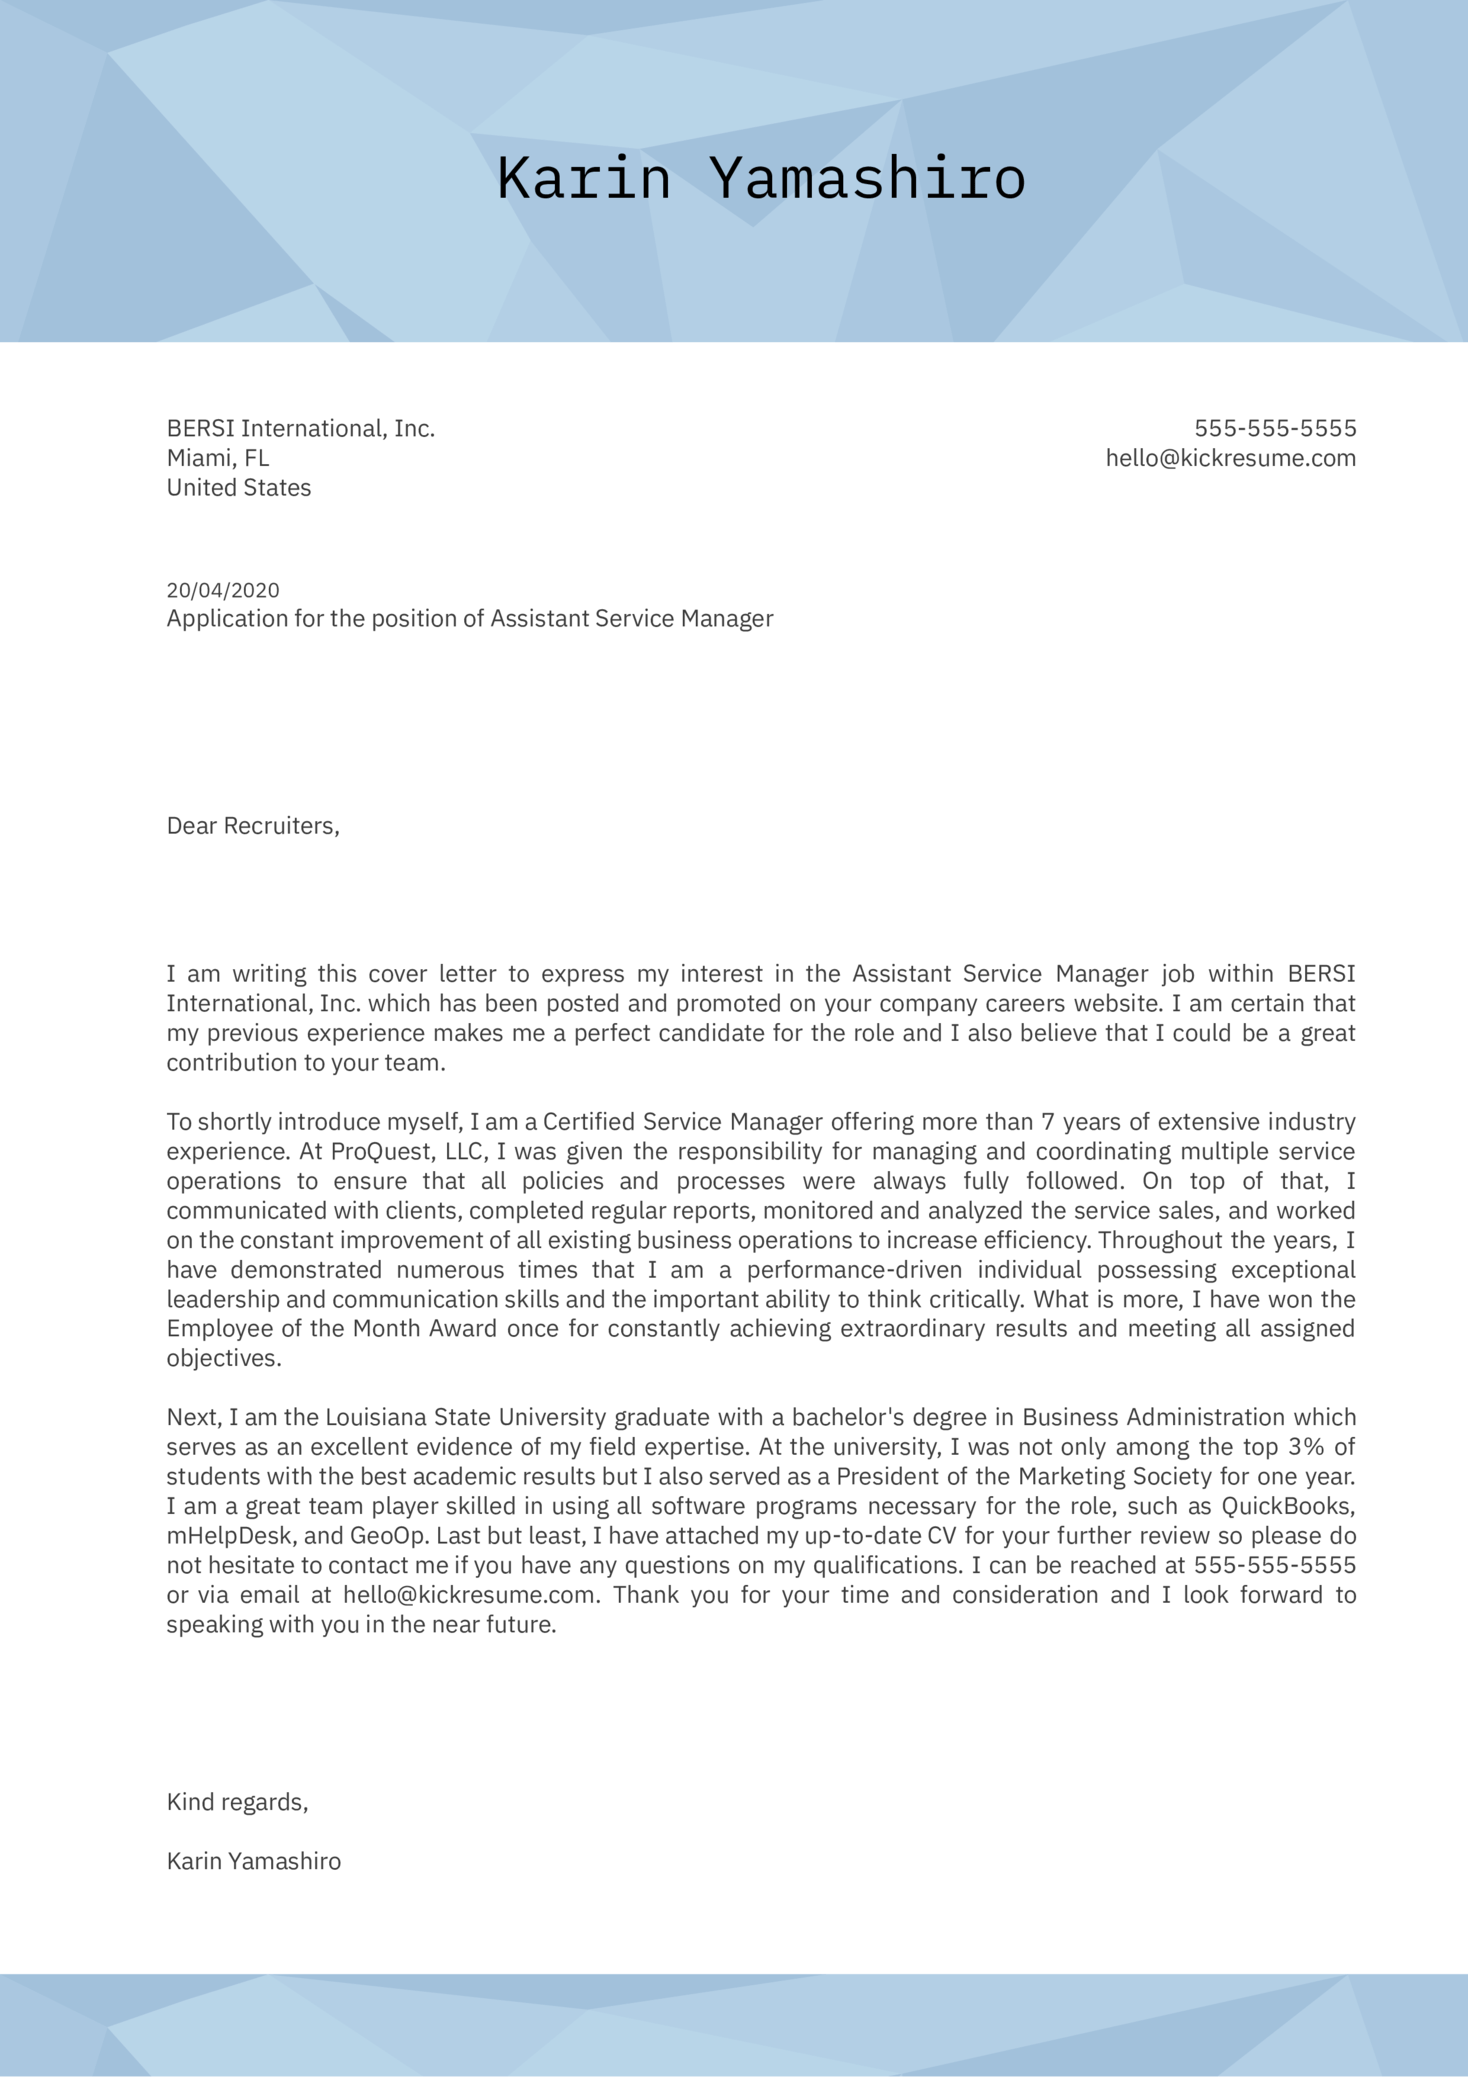 Assistant Service Manager Cover Letter Example